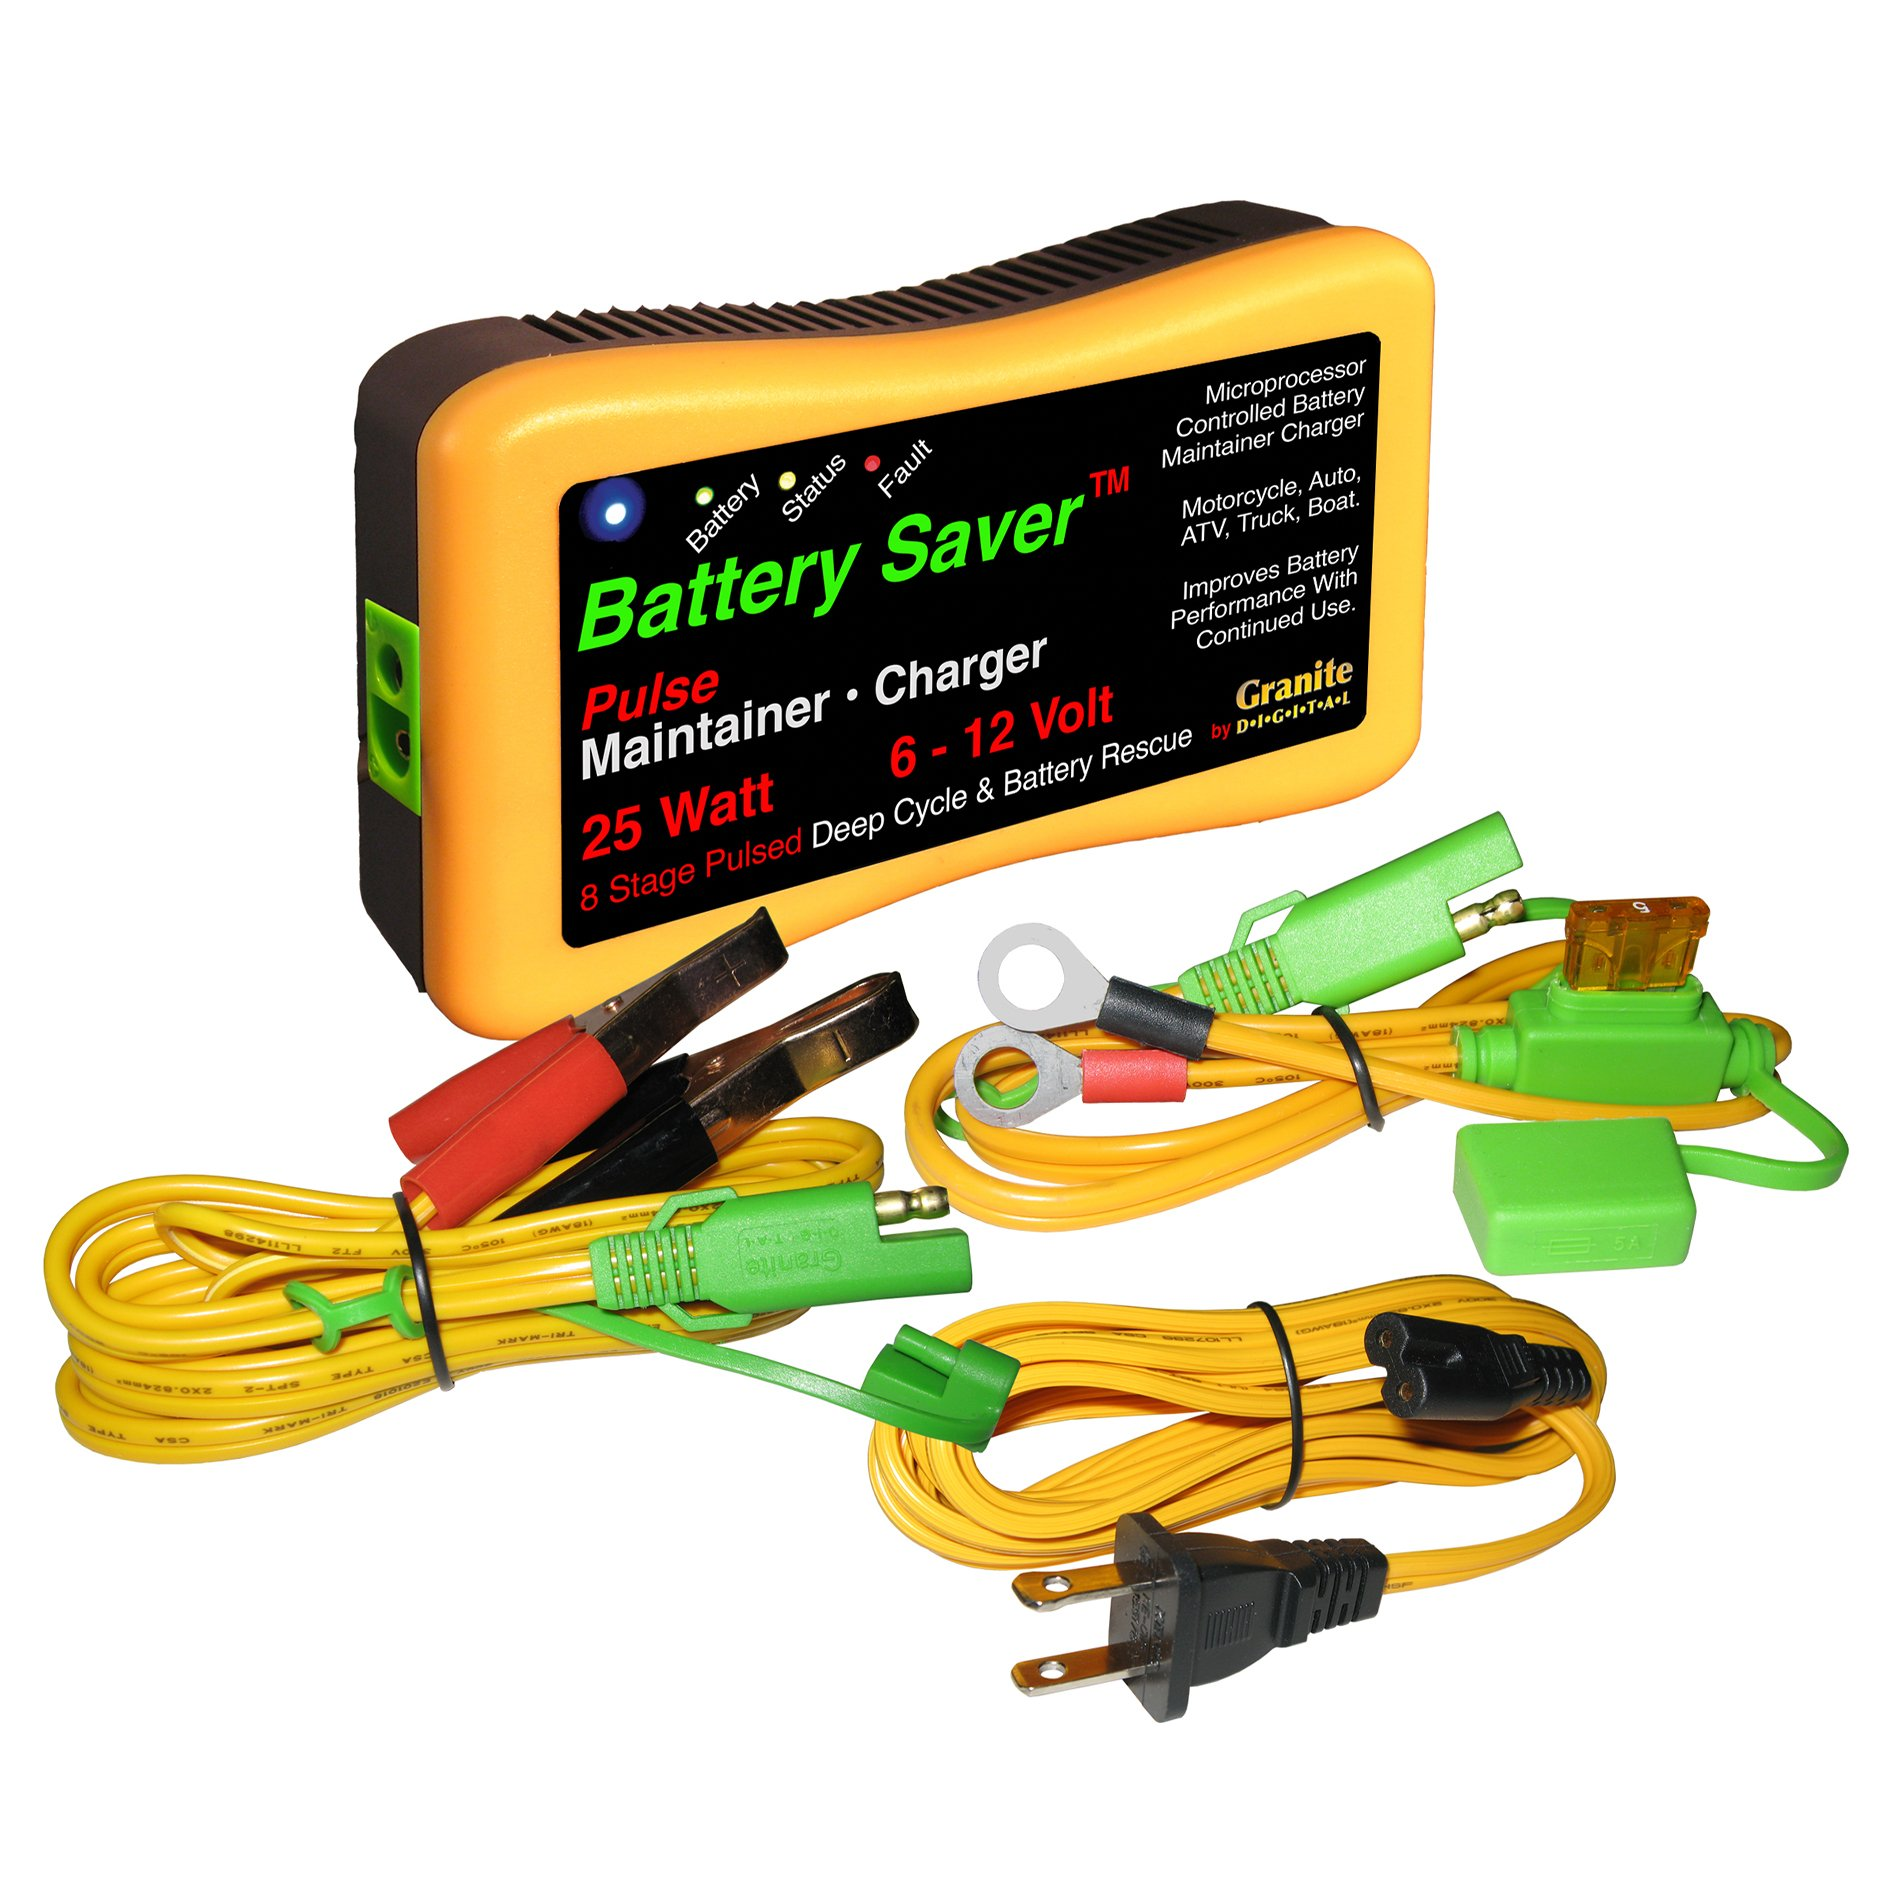 Save A Battery 3015 12 Volt/25 Watt Battery Saver/Maintainer and Battery Rescue by Battery Saver (Image #1)